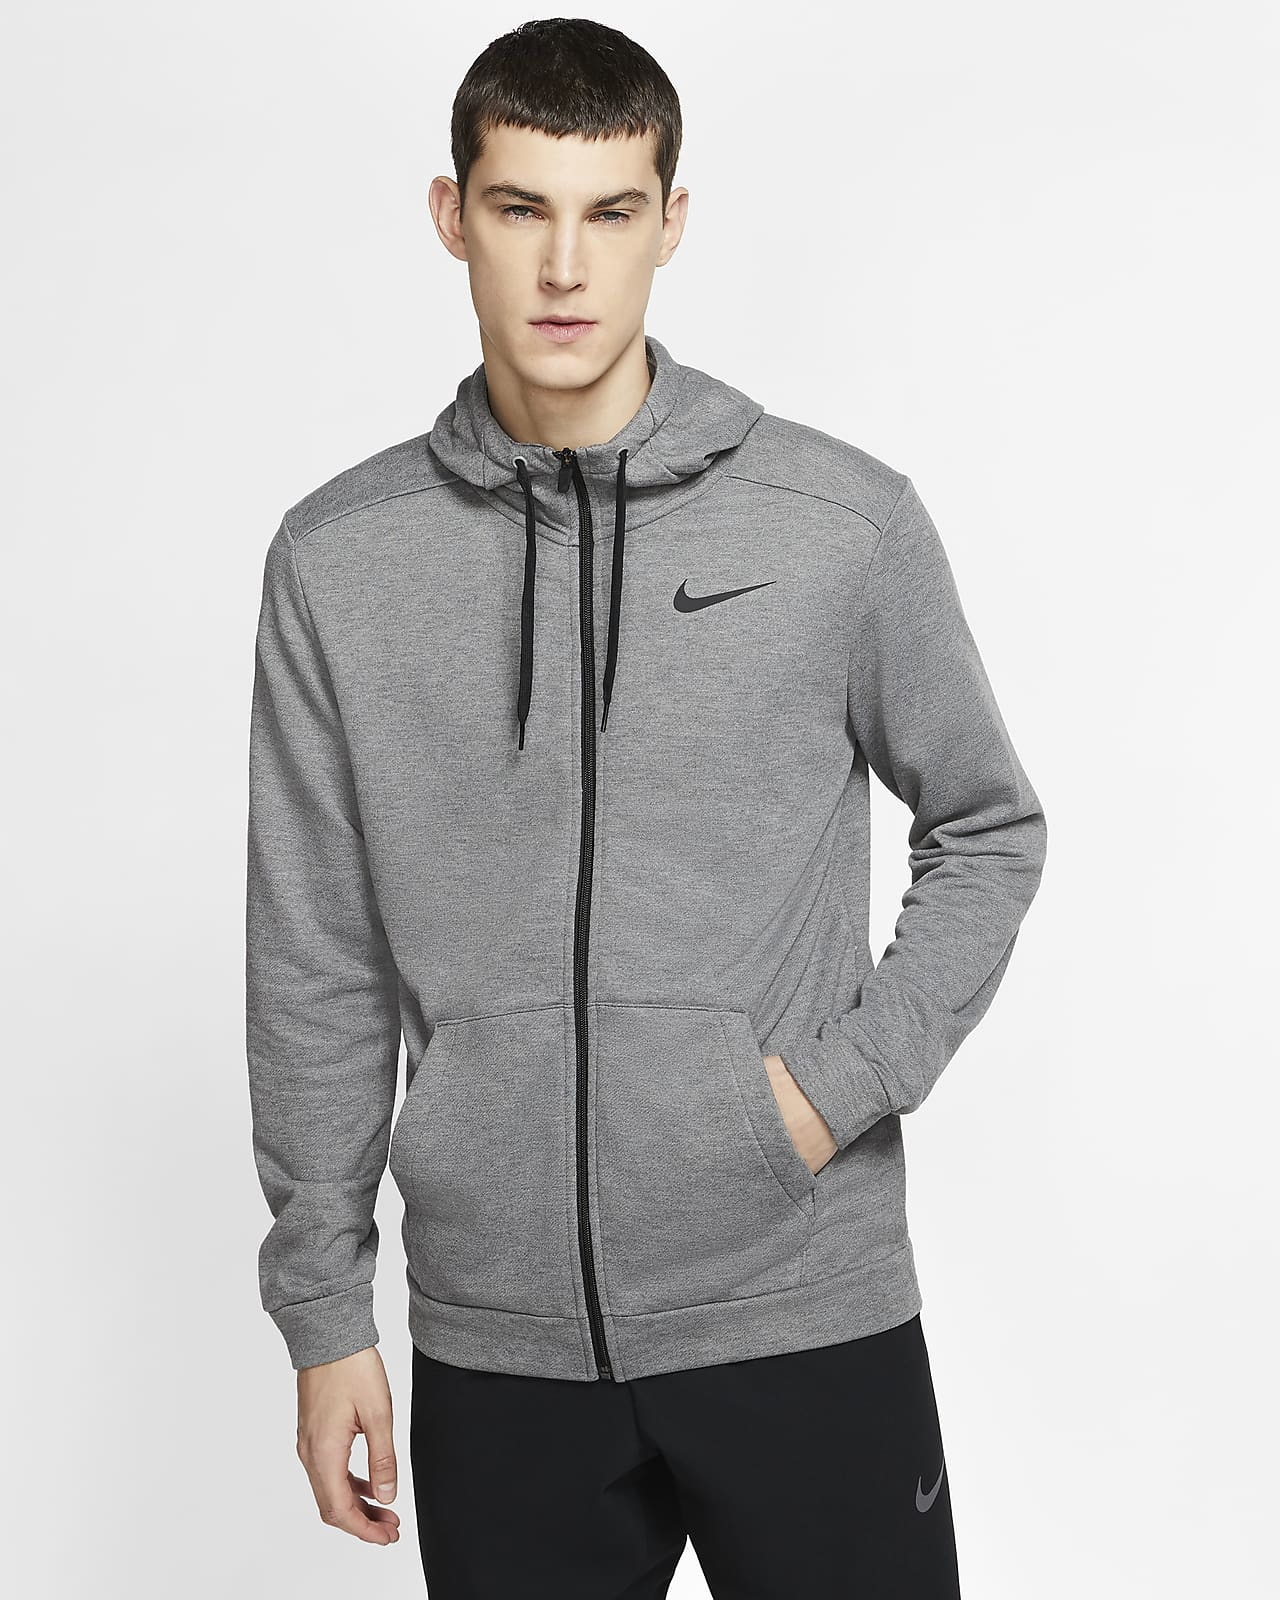 Cabecear Aislante antepasado  Nike Dri-FIT Men's Full-Zip Training Hoodie. Nike.com